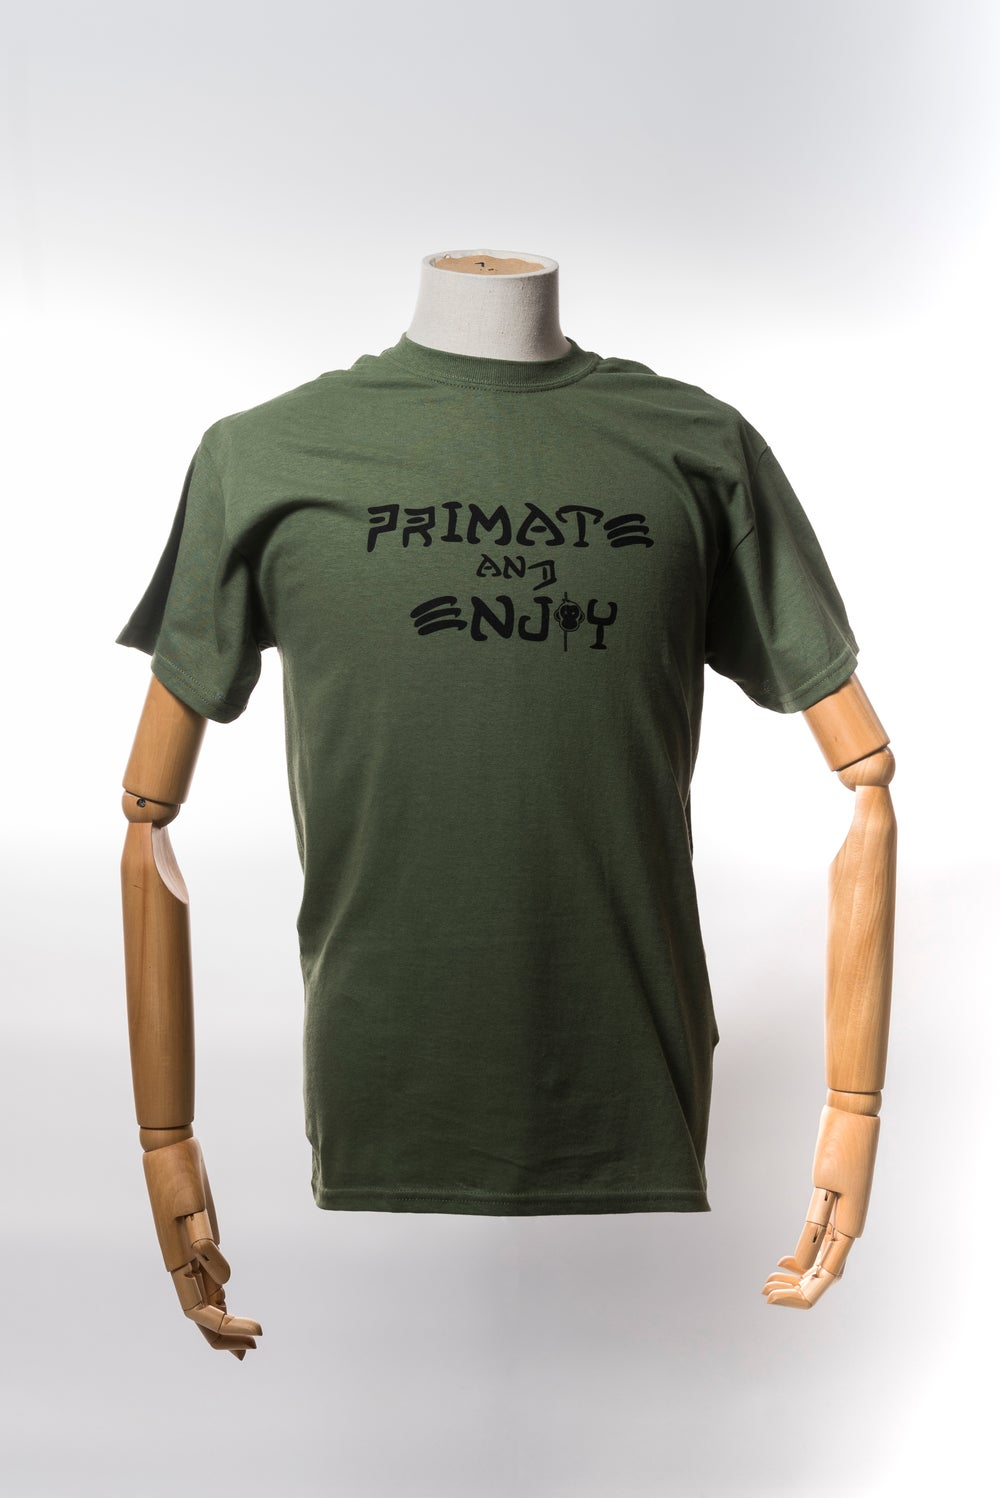 Image of Monkey Climber Primate and Enjoy shirt I Military Olive